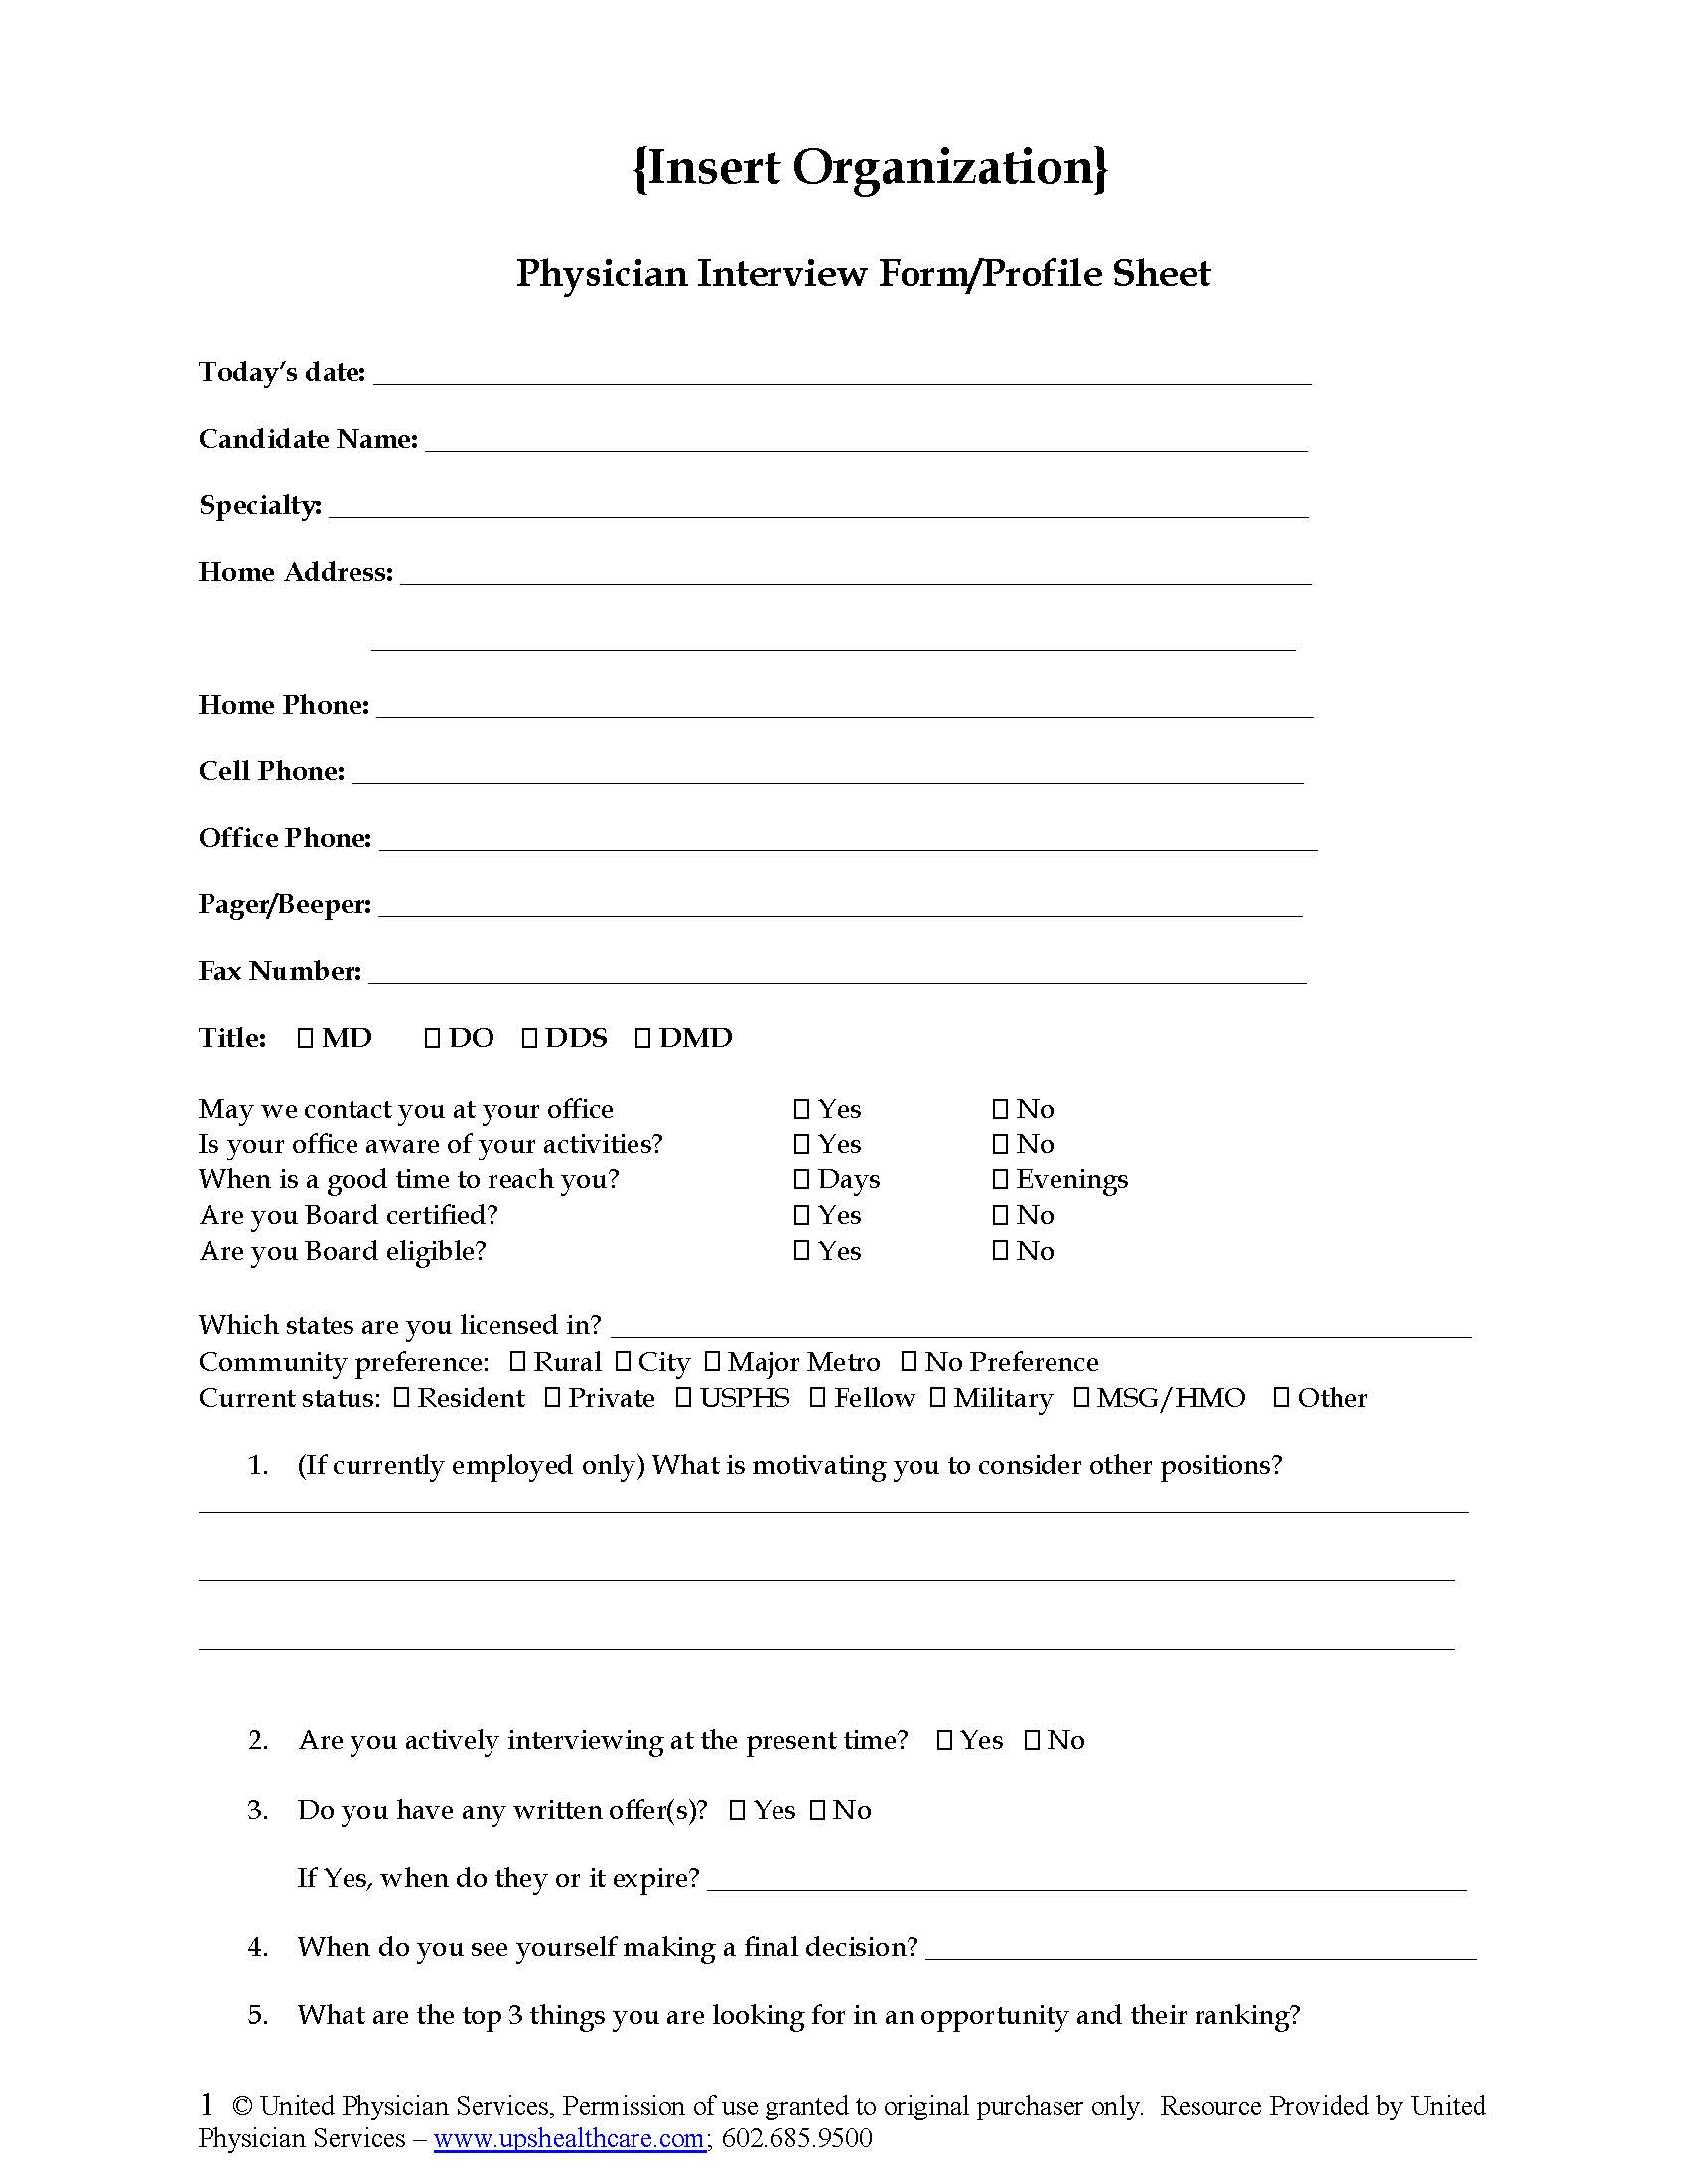 Physician Interview Profile Form